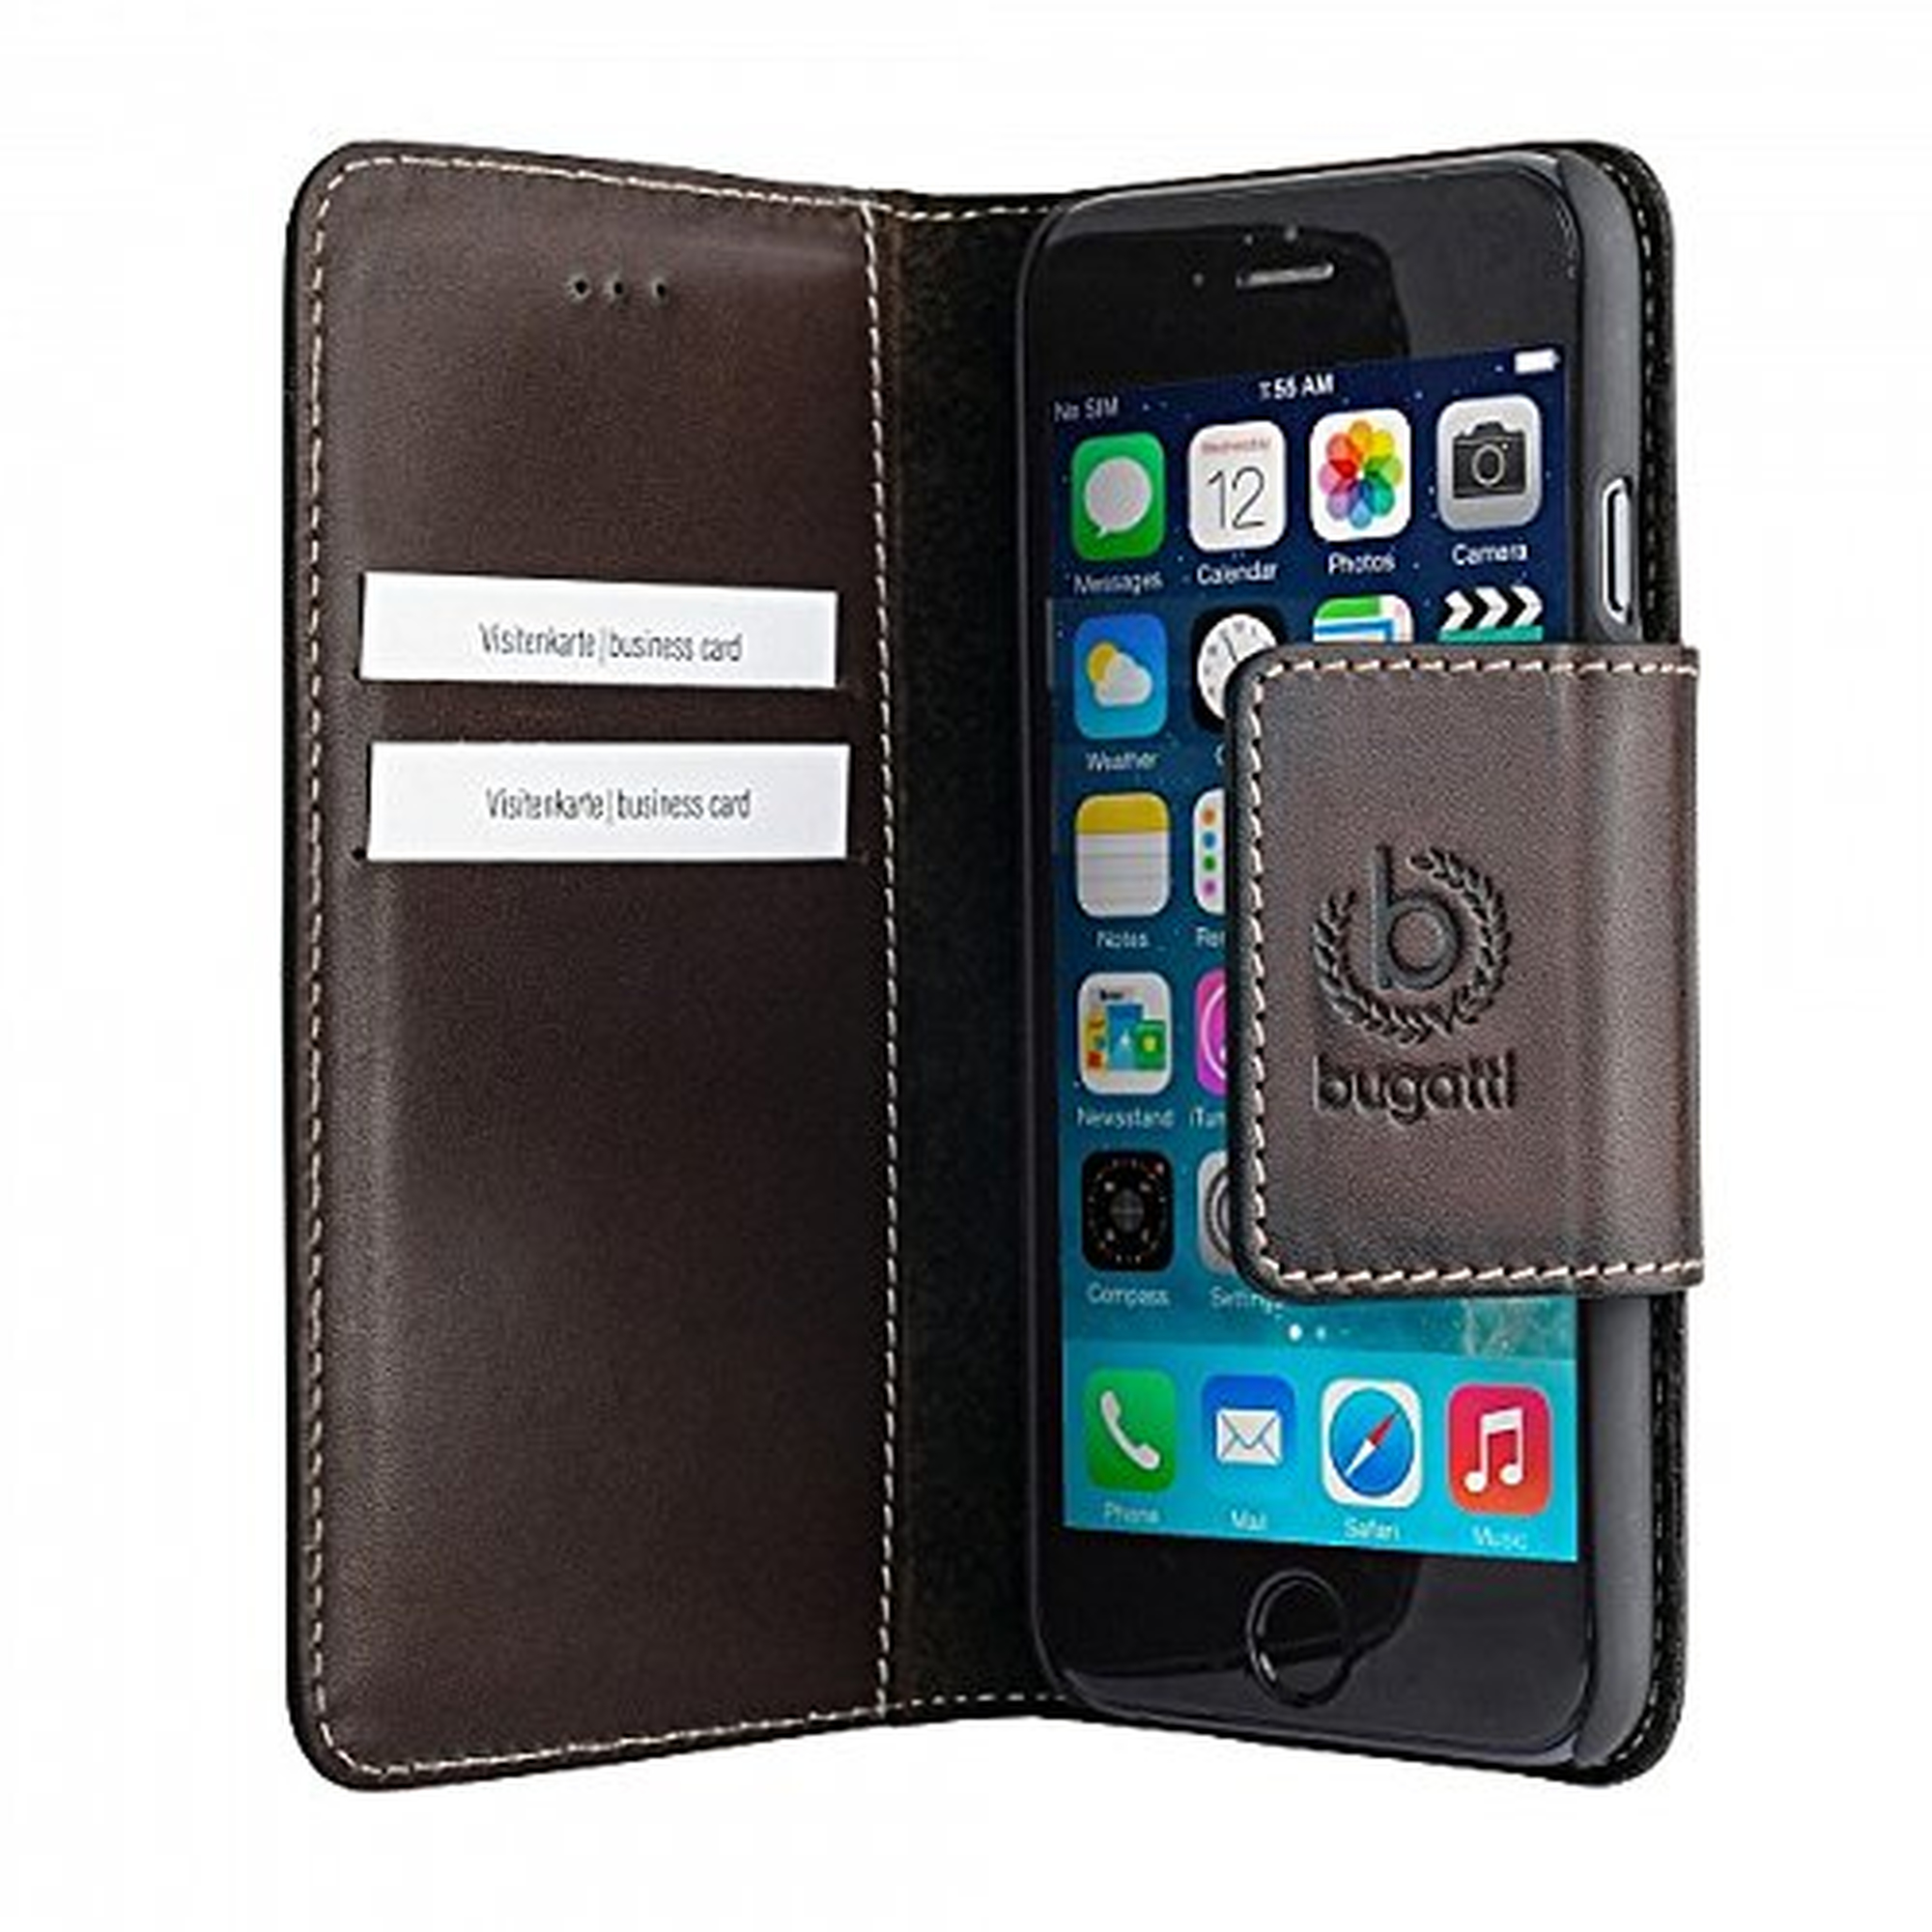 Bugatti BookCover Amsterdam Apple iPhone 6 Plus 6s Plus